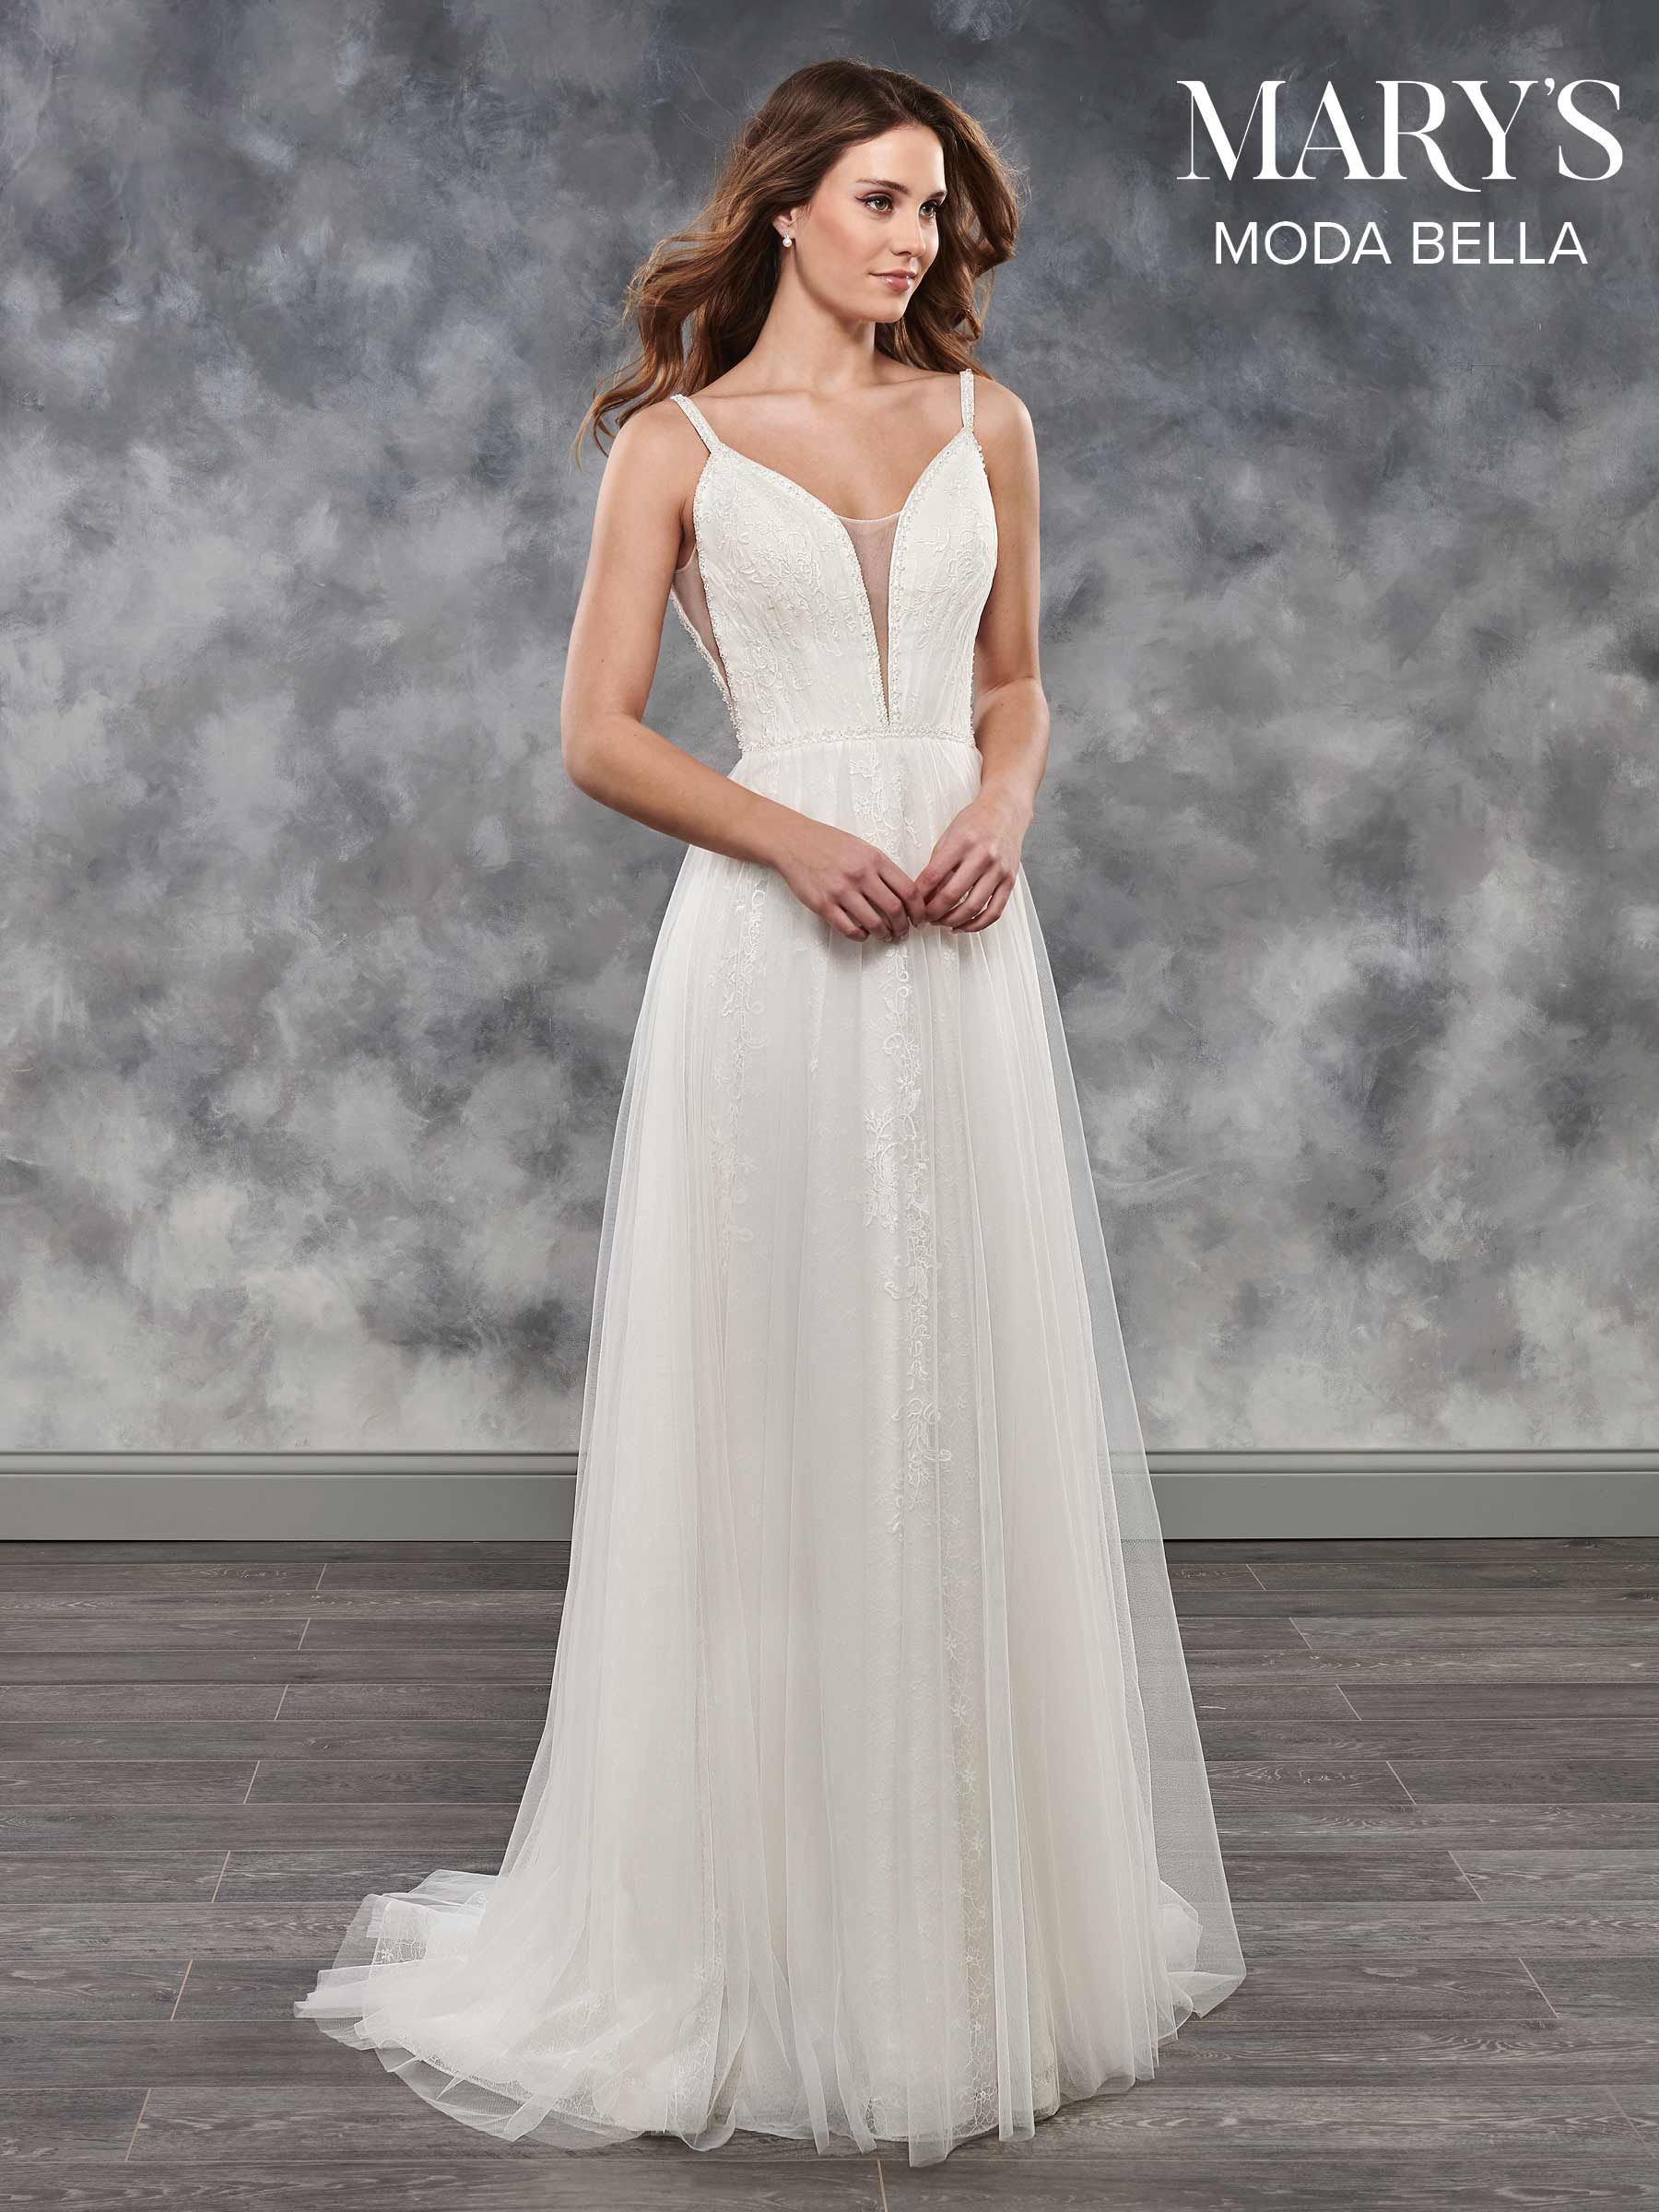 Modern and elegant boho wedding dress layers of tulle and lace